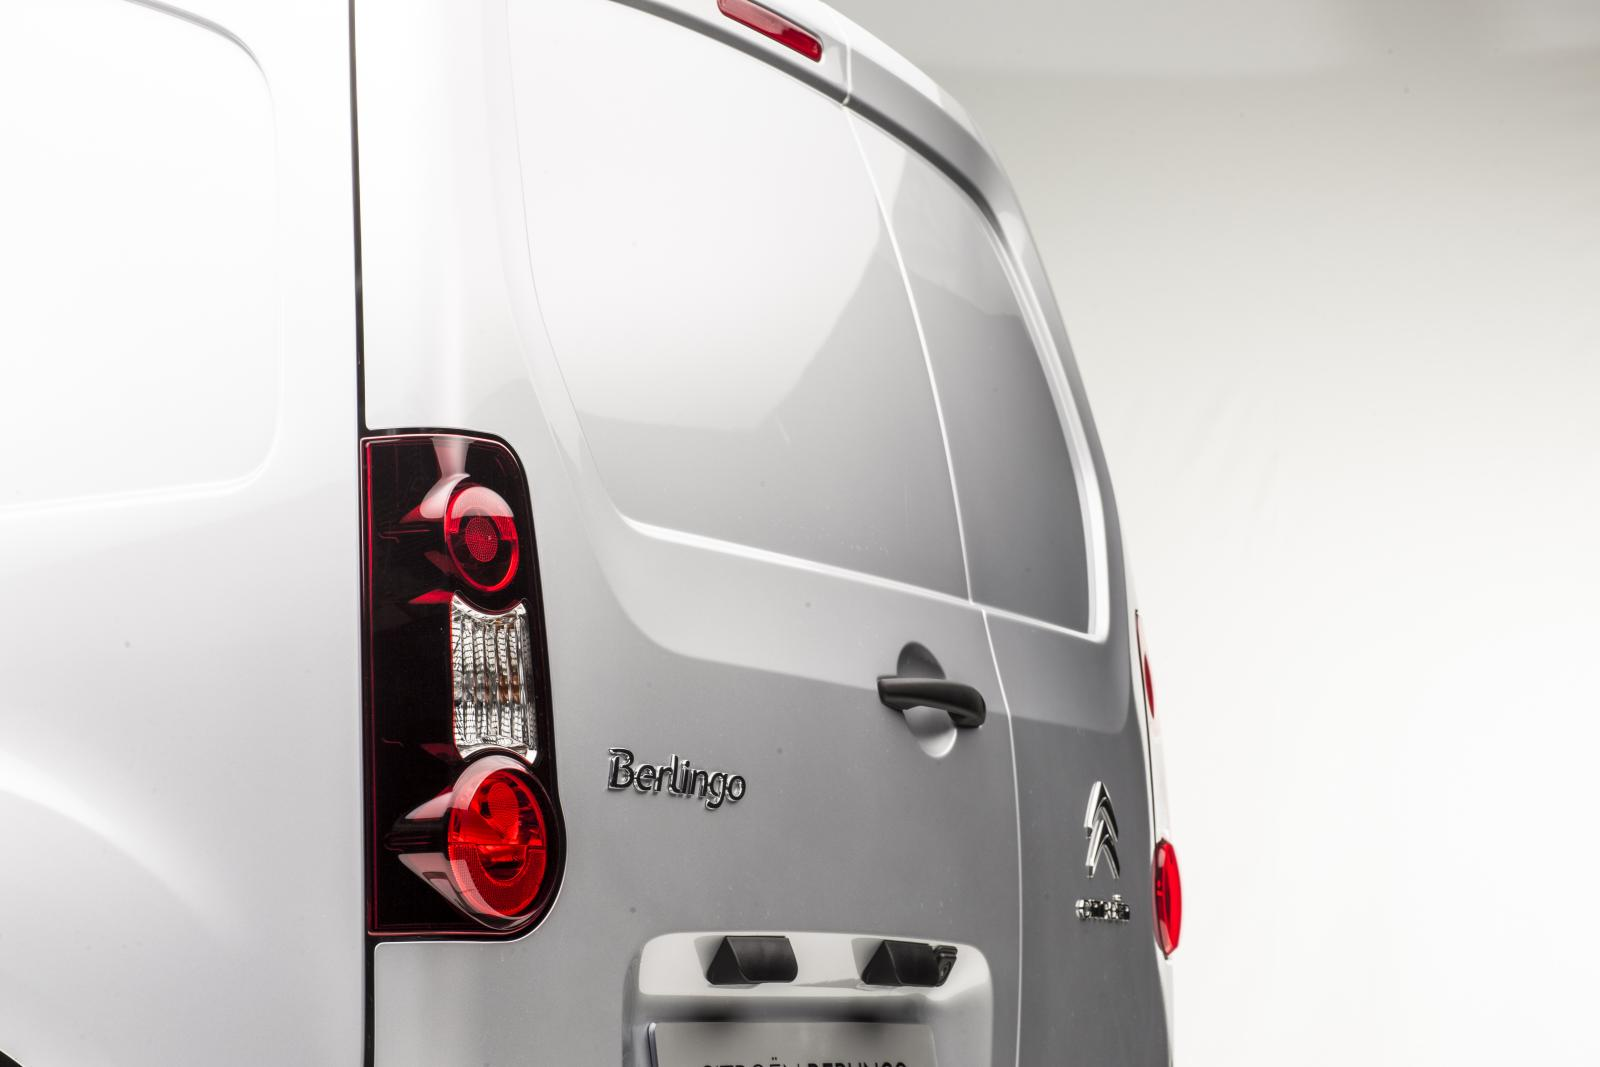 Berlingo 2nd generation